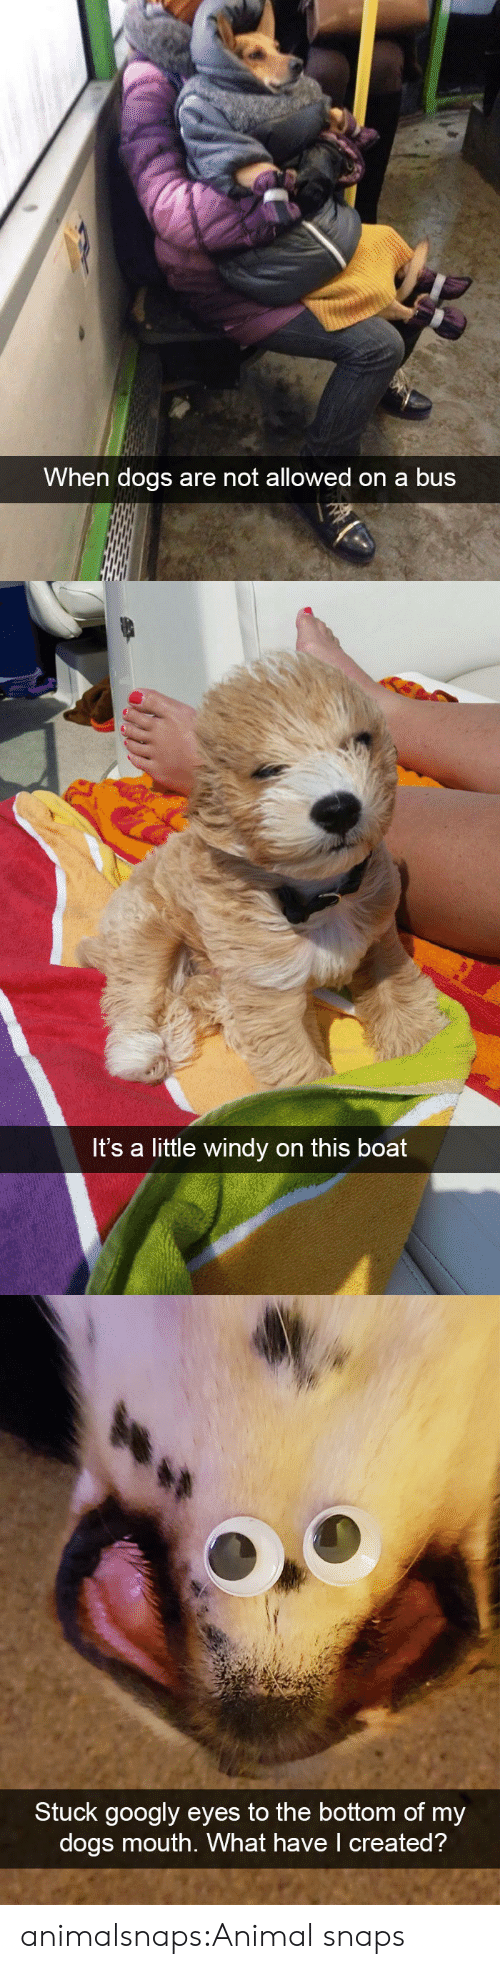 Dogs, Target, and Tumblr: When dogs are not allowed on a bus   Its a little windy on this boat   Stuck googly eyes to the bottom of my  dogs mouth. What have I created? animalsnaps:Animal snaps